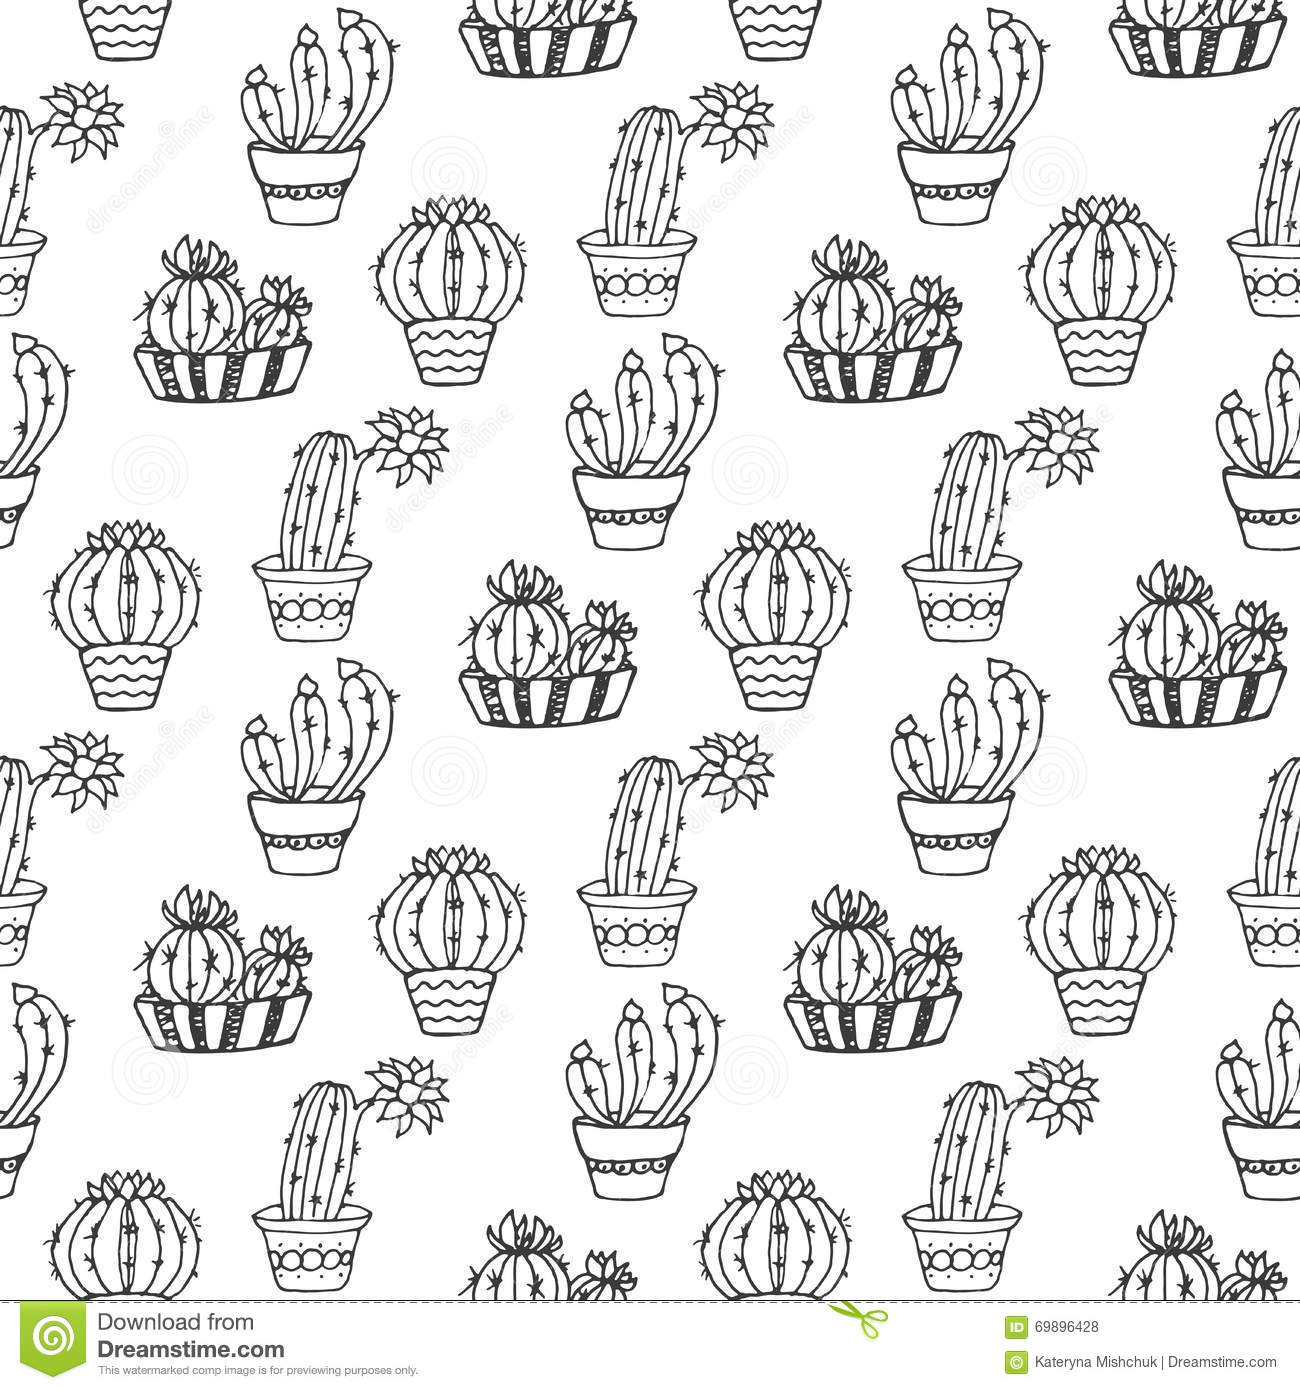 Cactus Seamless Pattern Illustration. Vector Succulent And Cacti ...